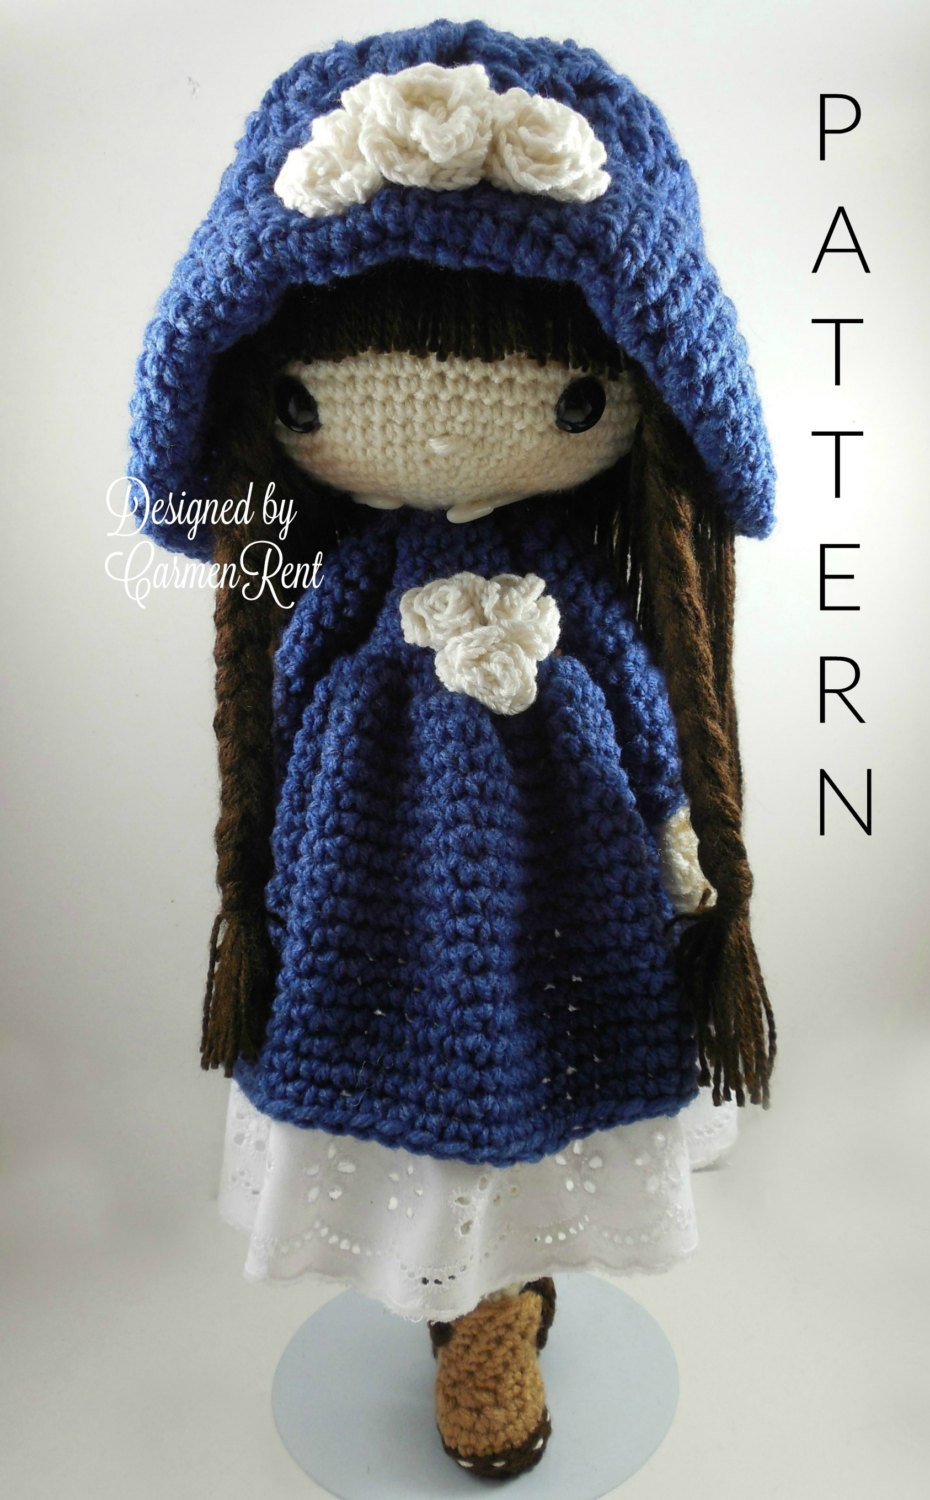 Doll Patterns Best Of Matilda Amigurumi Doll Crochet Pattern Pdf Of Doll Patterns Best Of Rag Doll Patterns